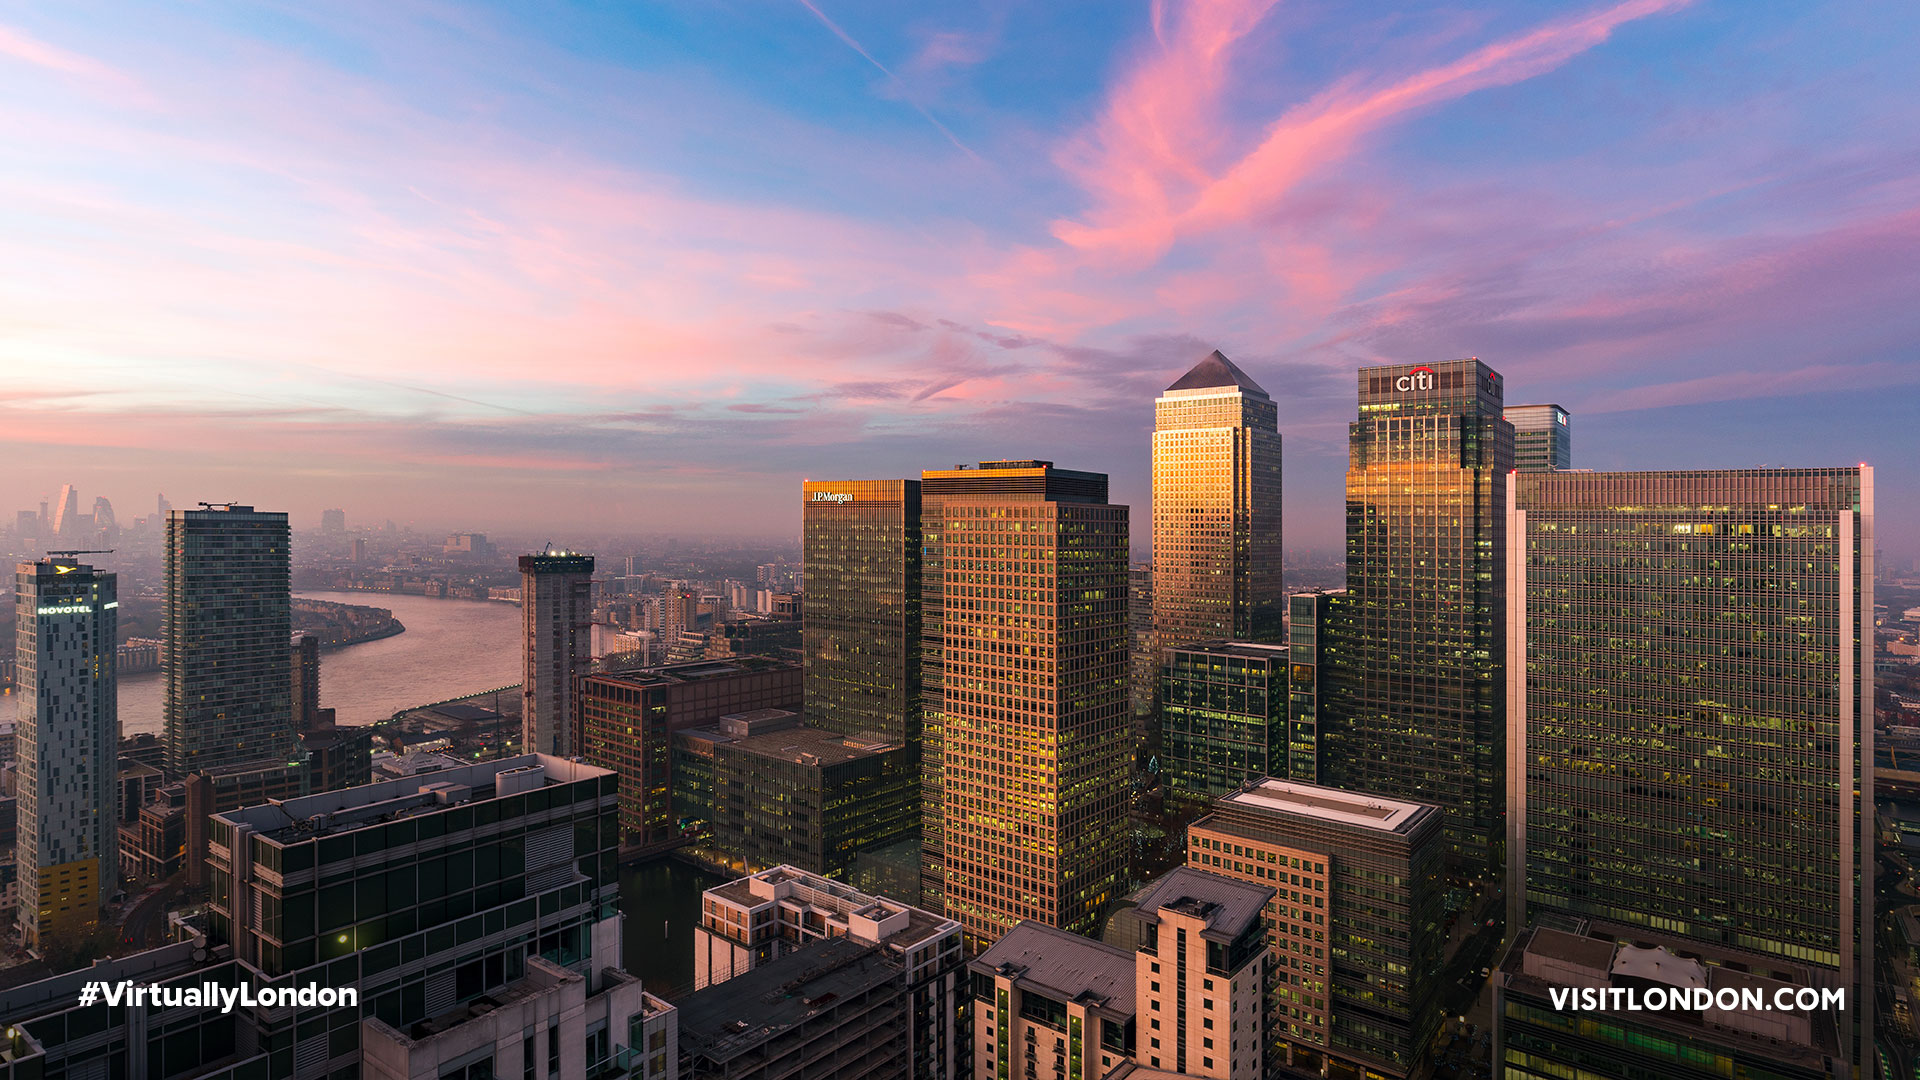 London - Canary Wharf - Canary Wharf sunset